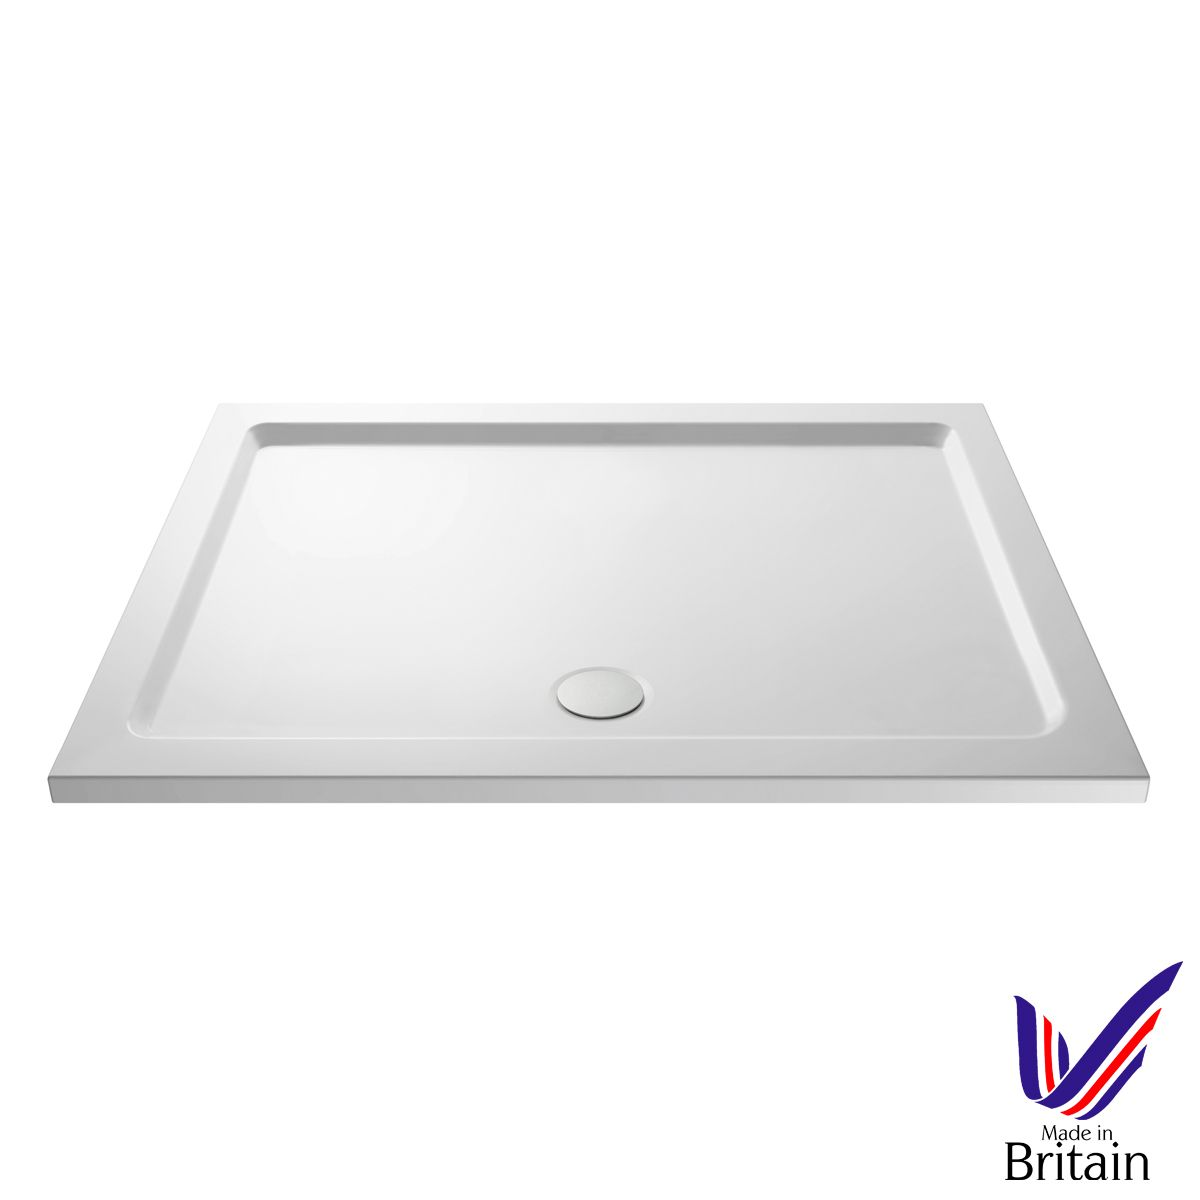 1500 x 900 Shower Tray Rectangular Low Profile by Pearlstone